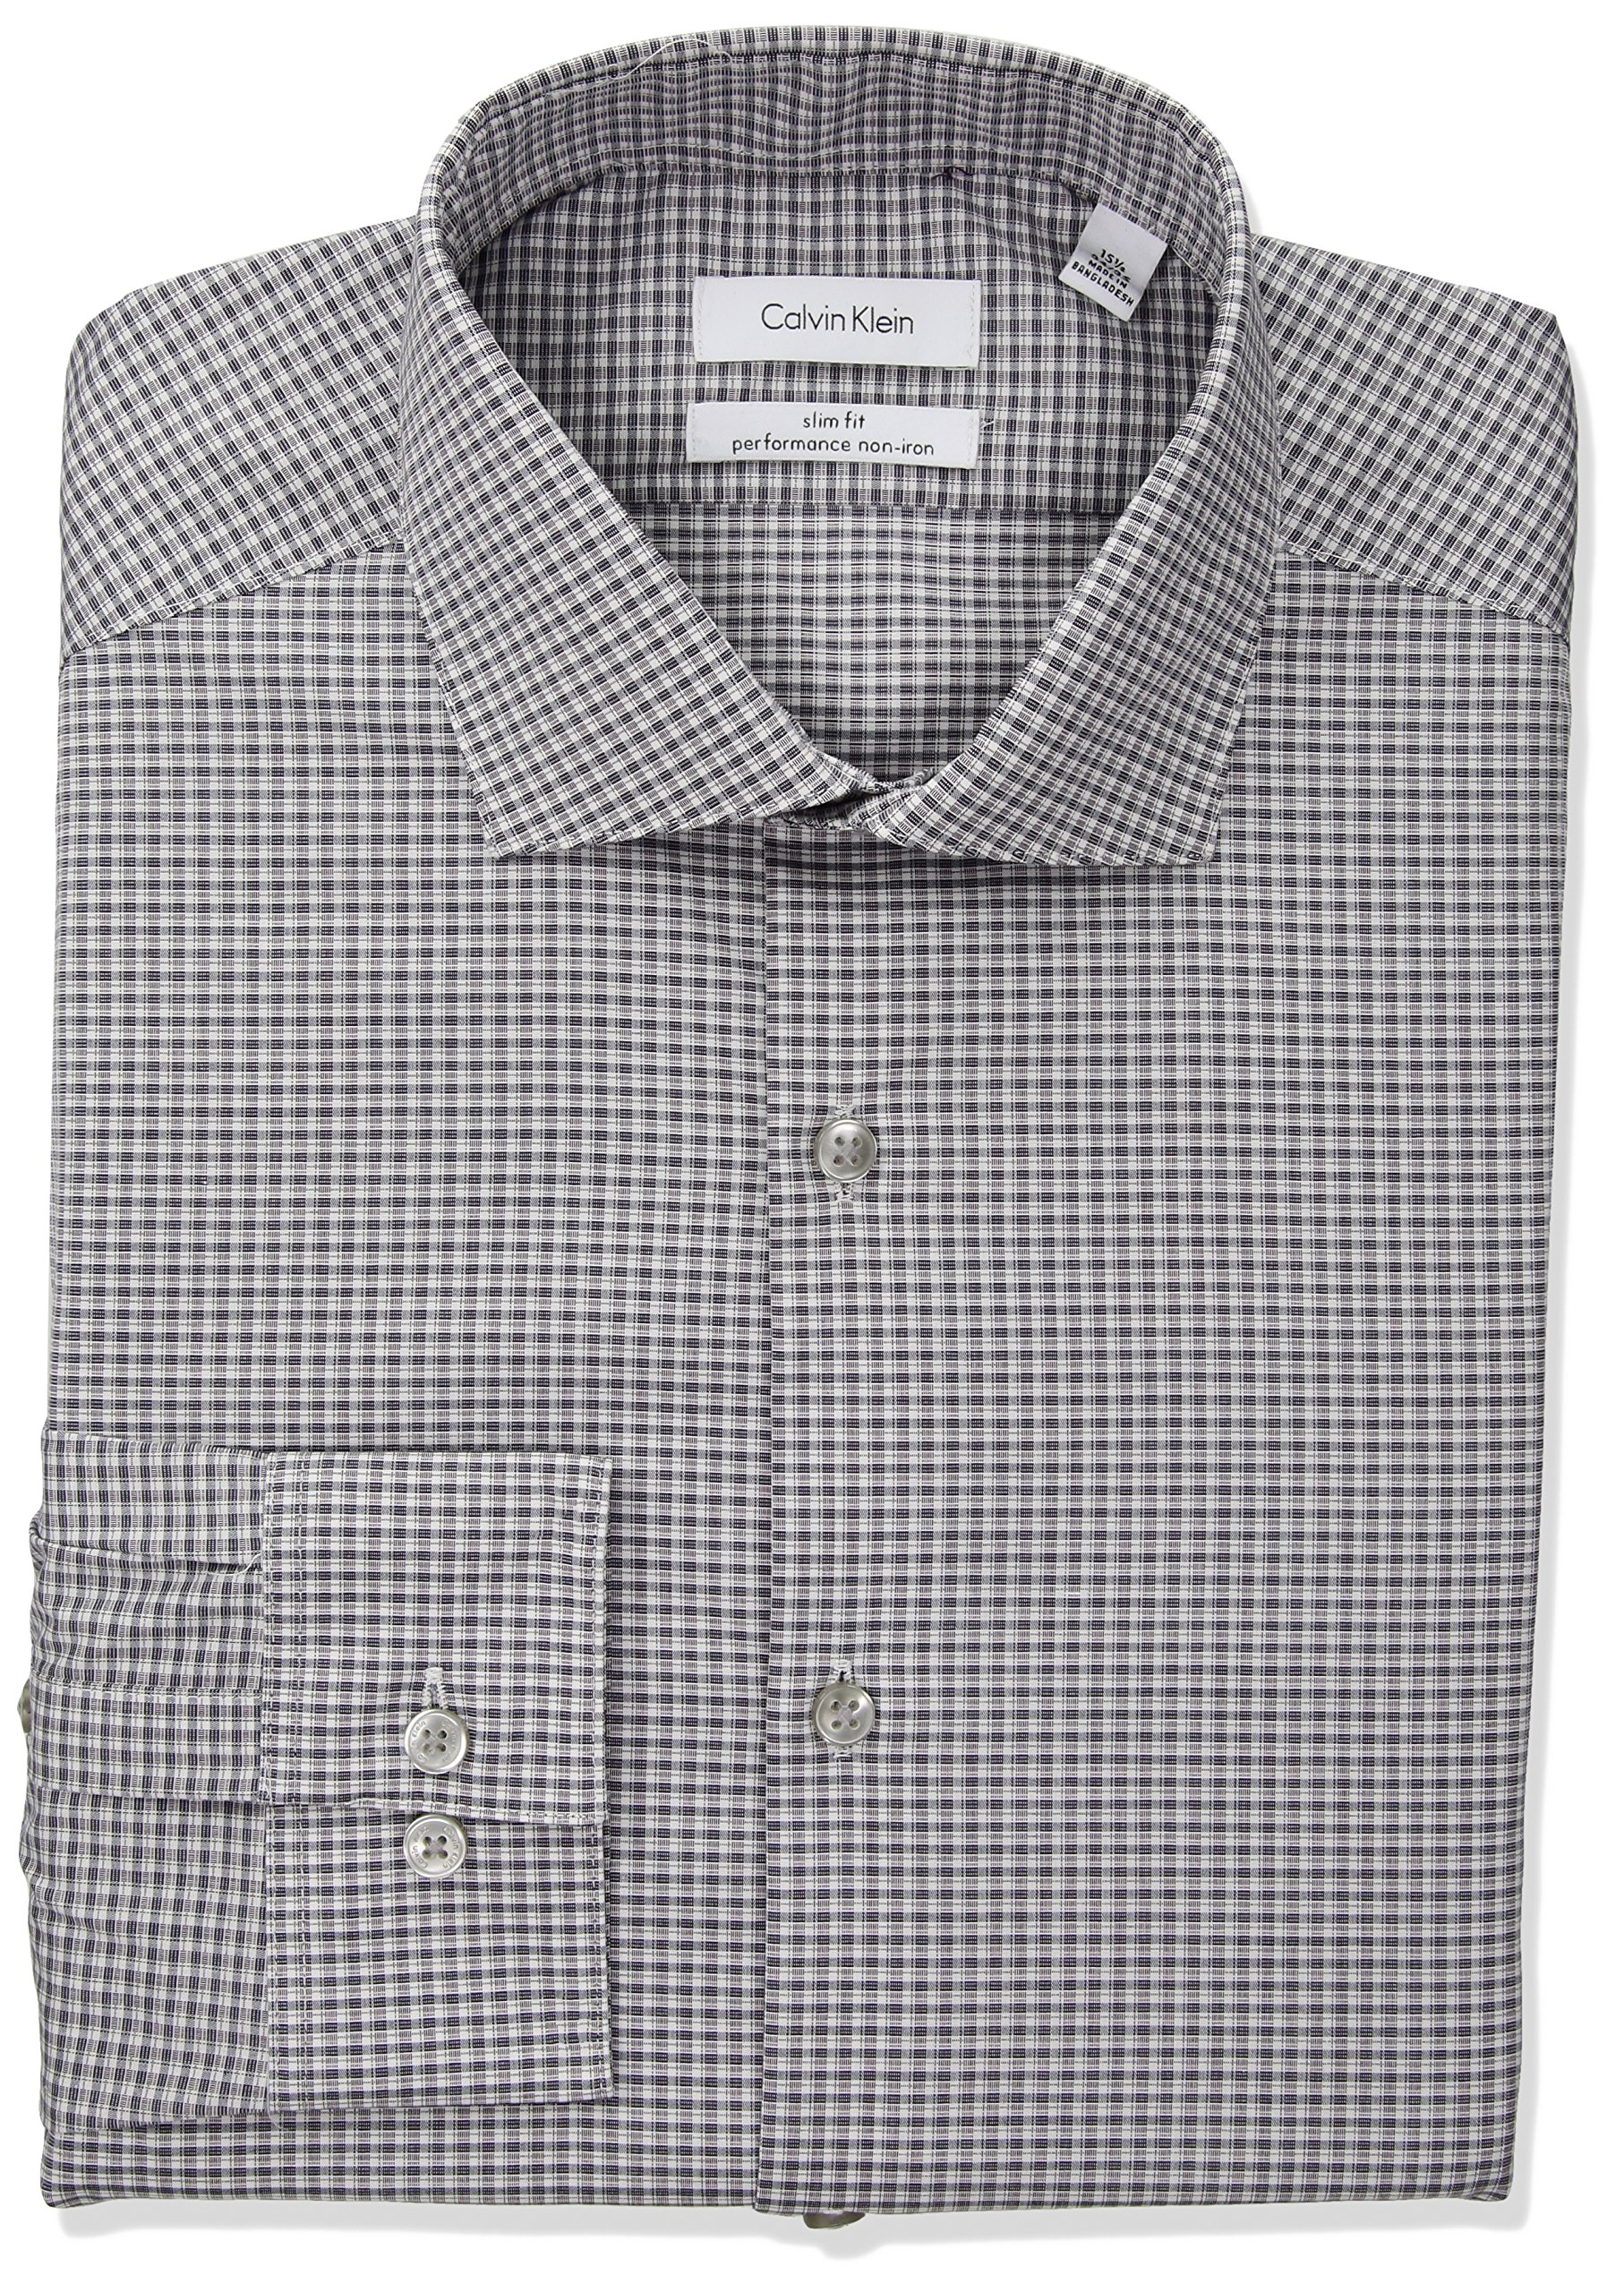 Calvin Klein Men's Non Iron Slim Fit Stretch Check Spread Collar Dress Shirt, Red/Multi, 16.5'' Neck 34''-35'' Sleeve